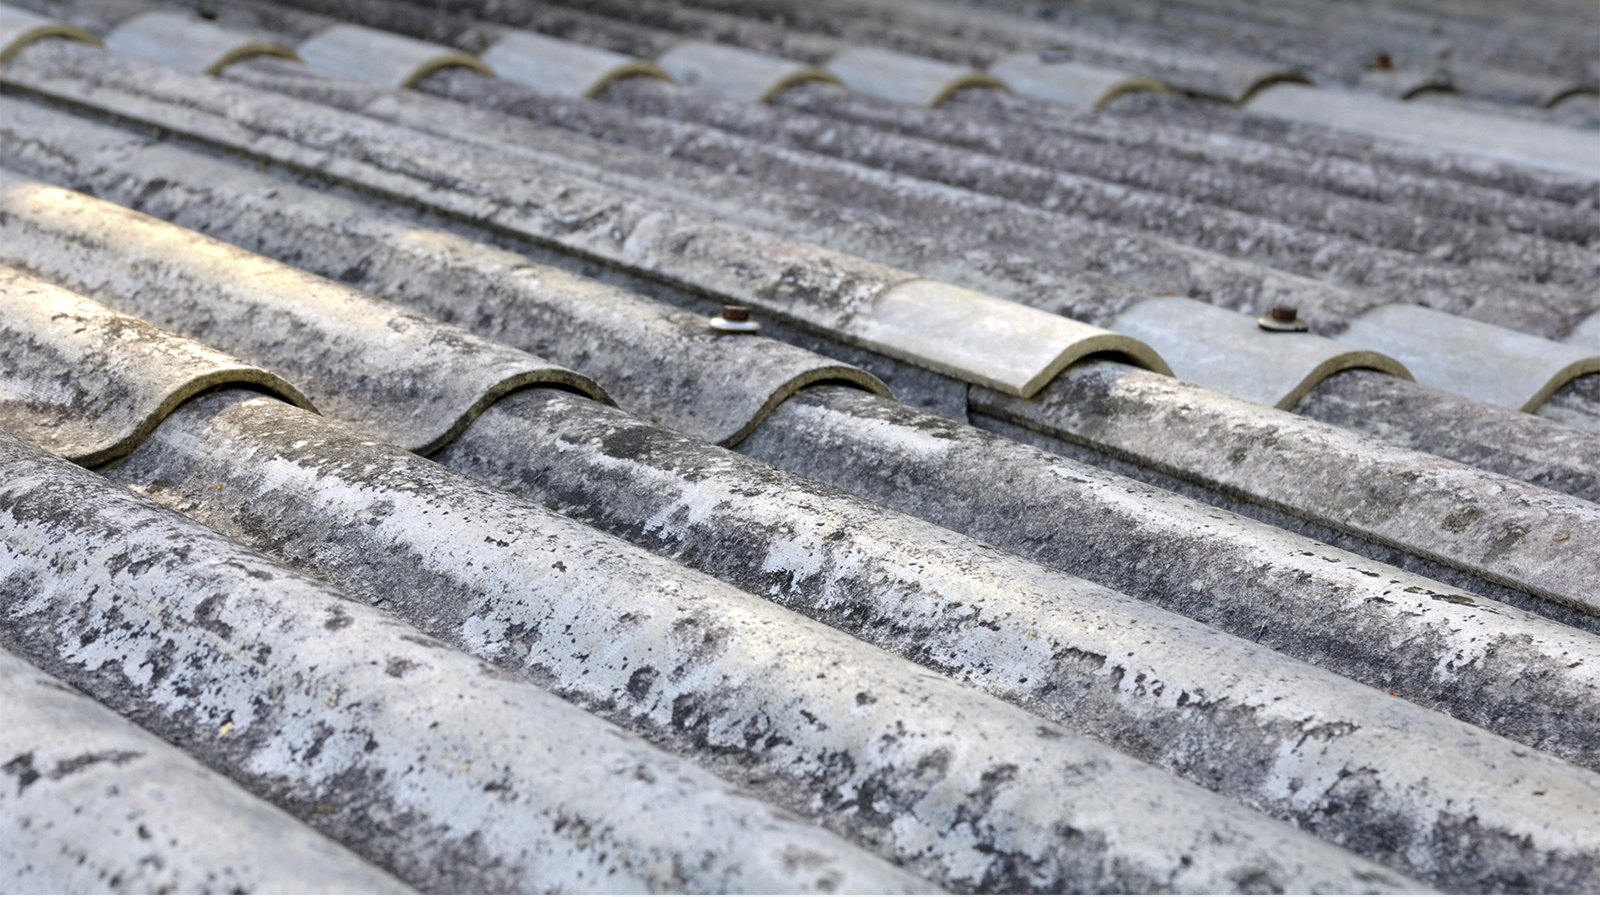 Professional Asbestos Removal Services in Australia - Myers